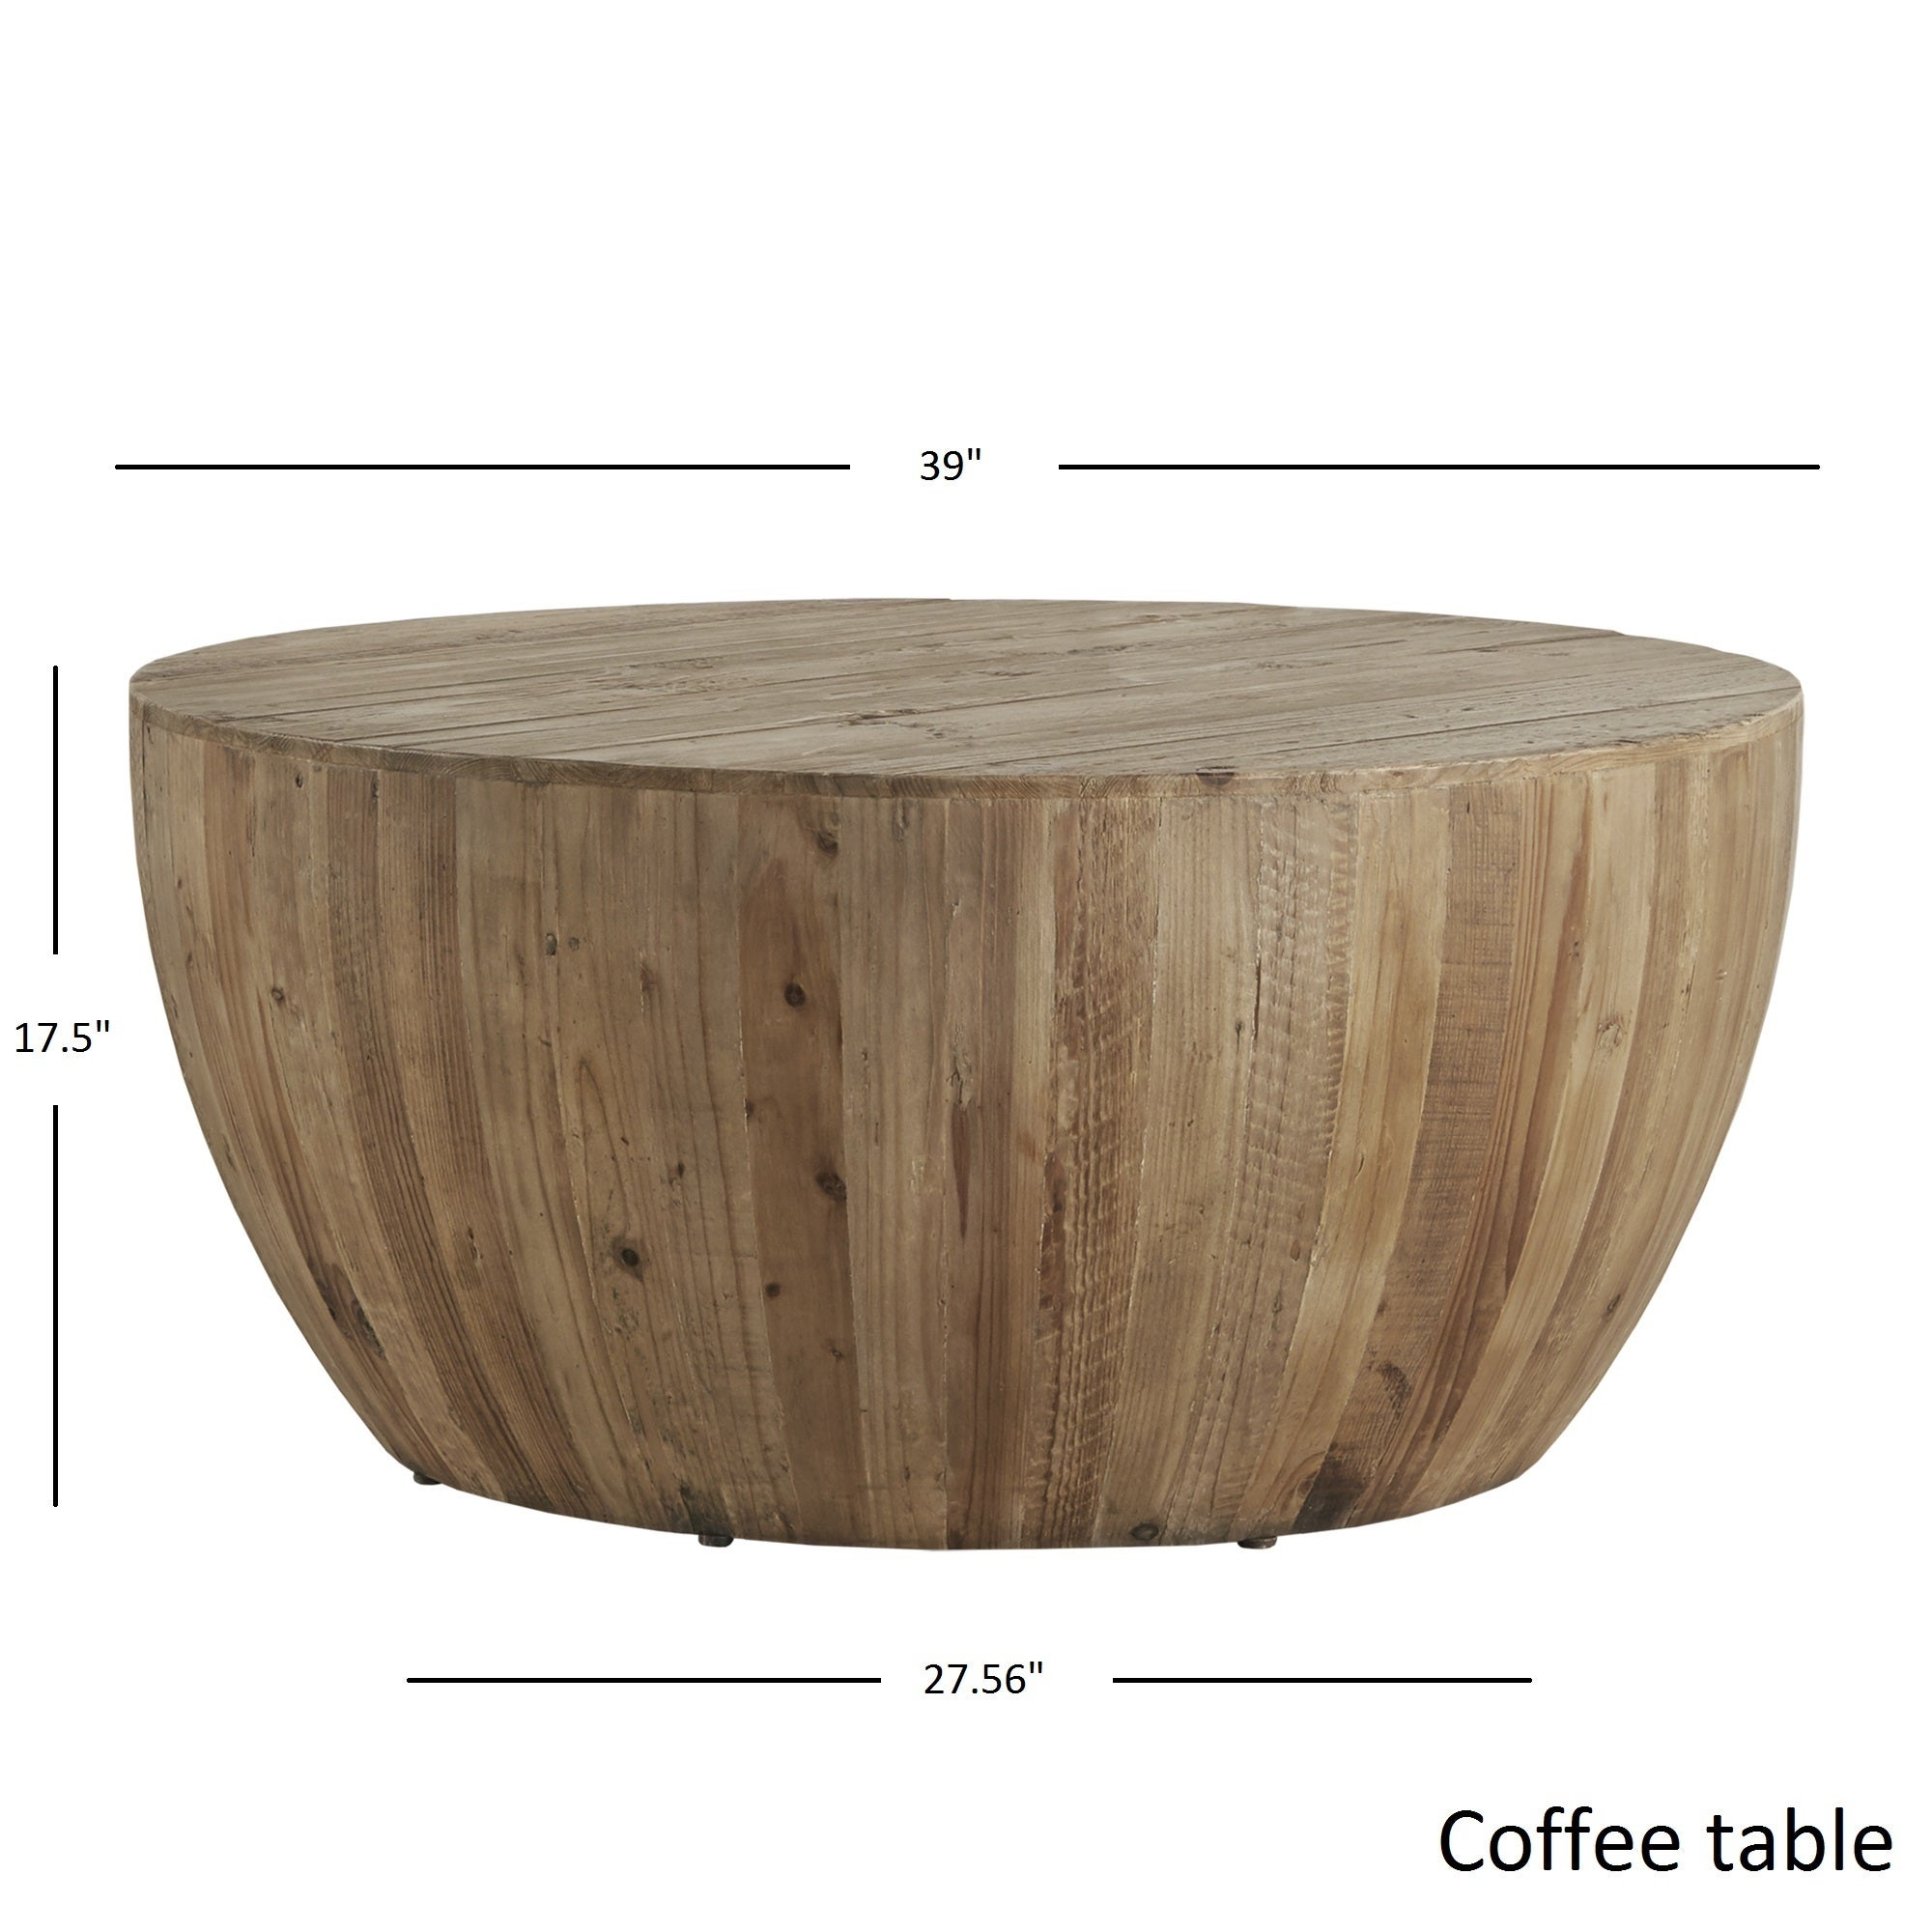 Hatteras Drum Reclaimed Woodblock Barrel Coffee Table by iNSPIRE Q